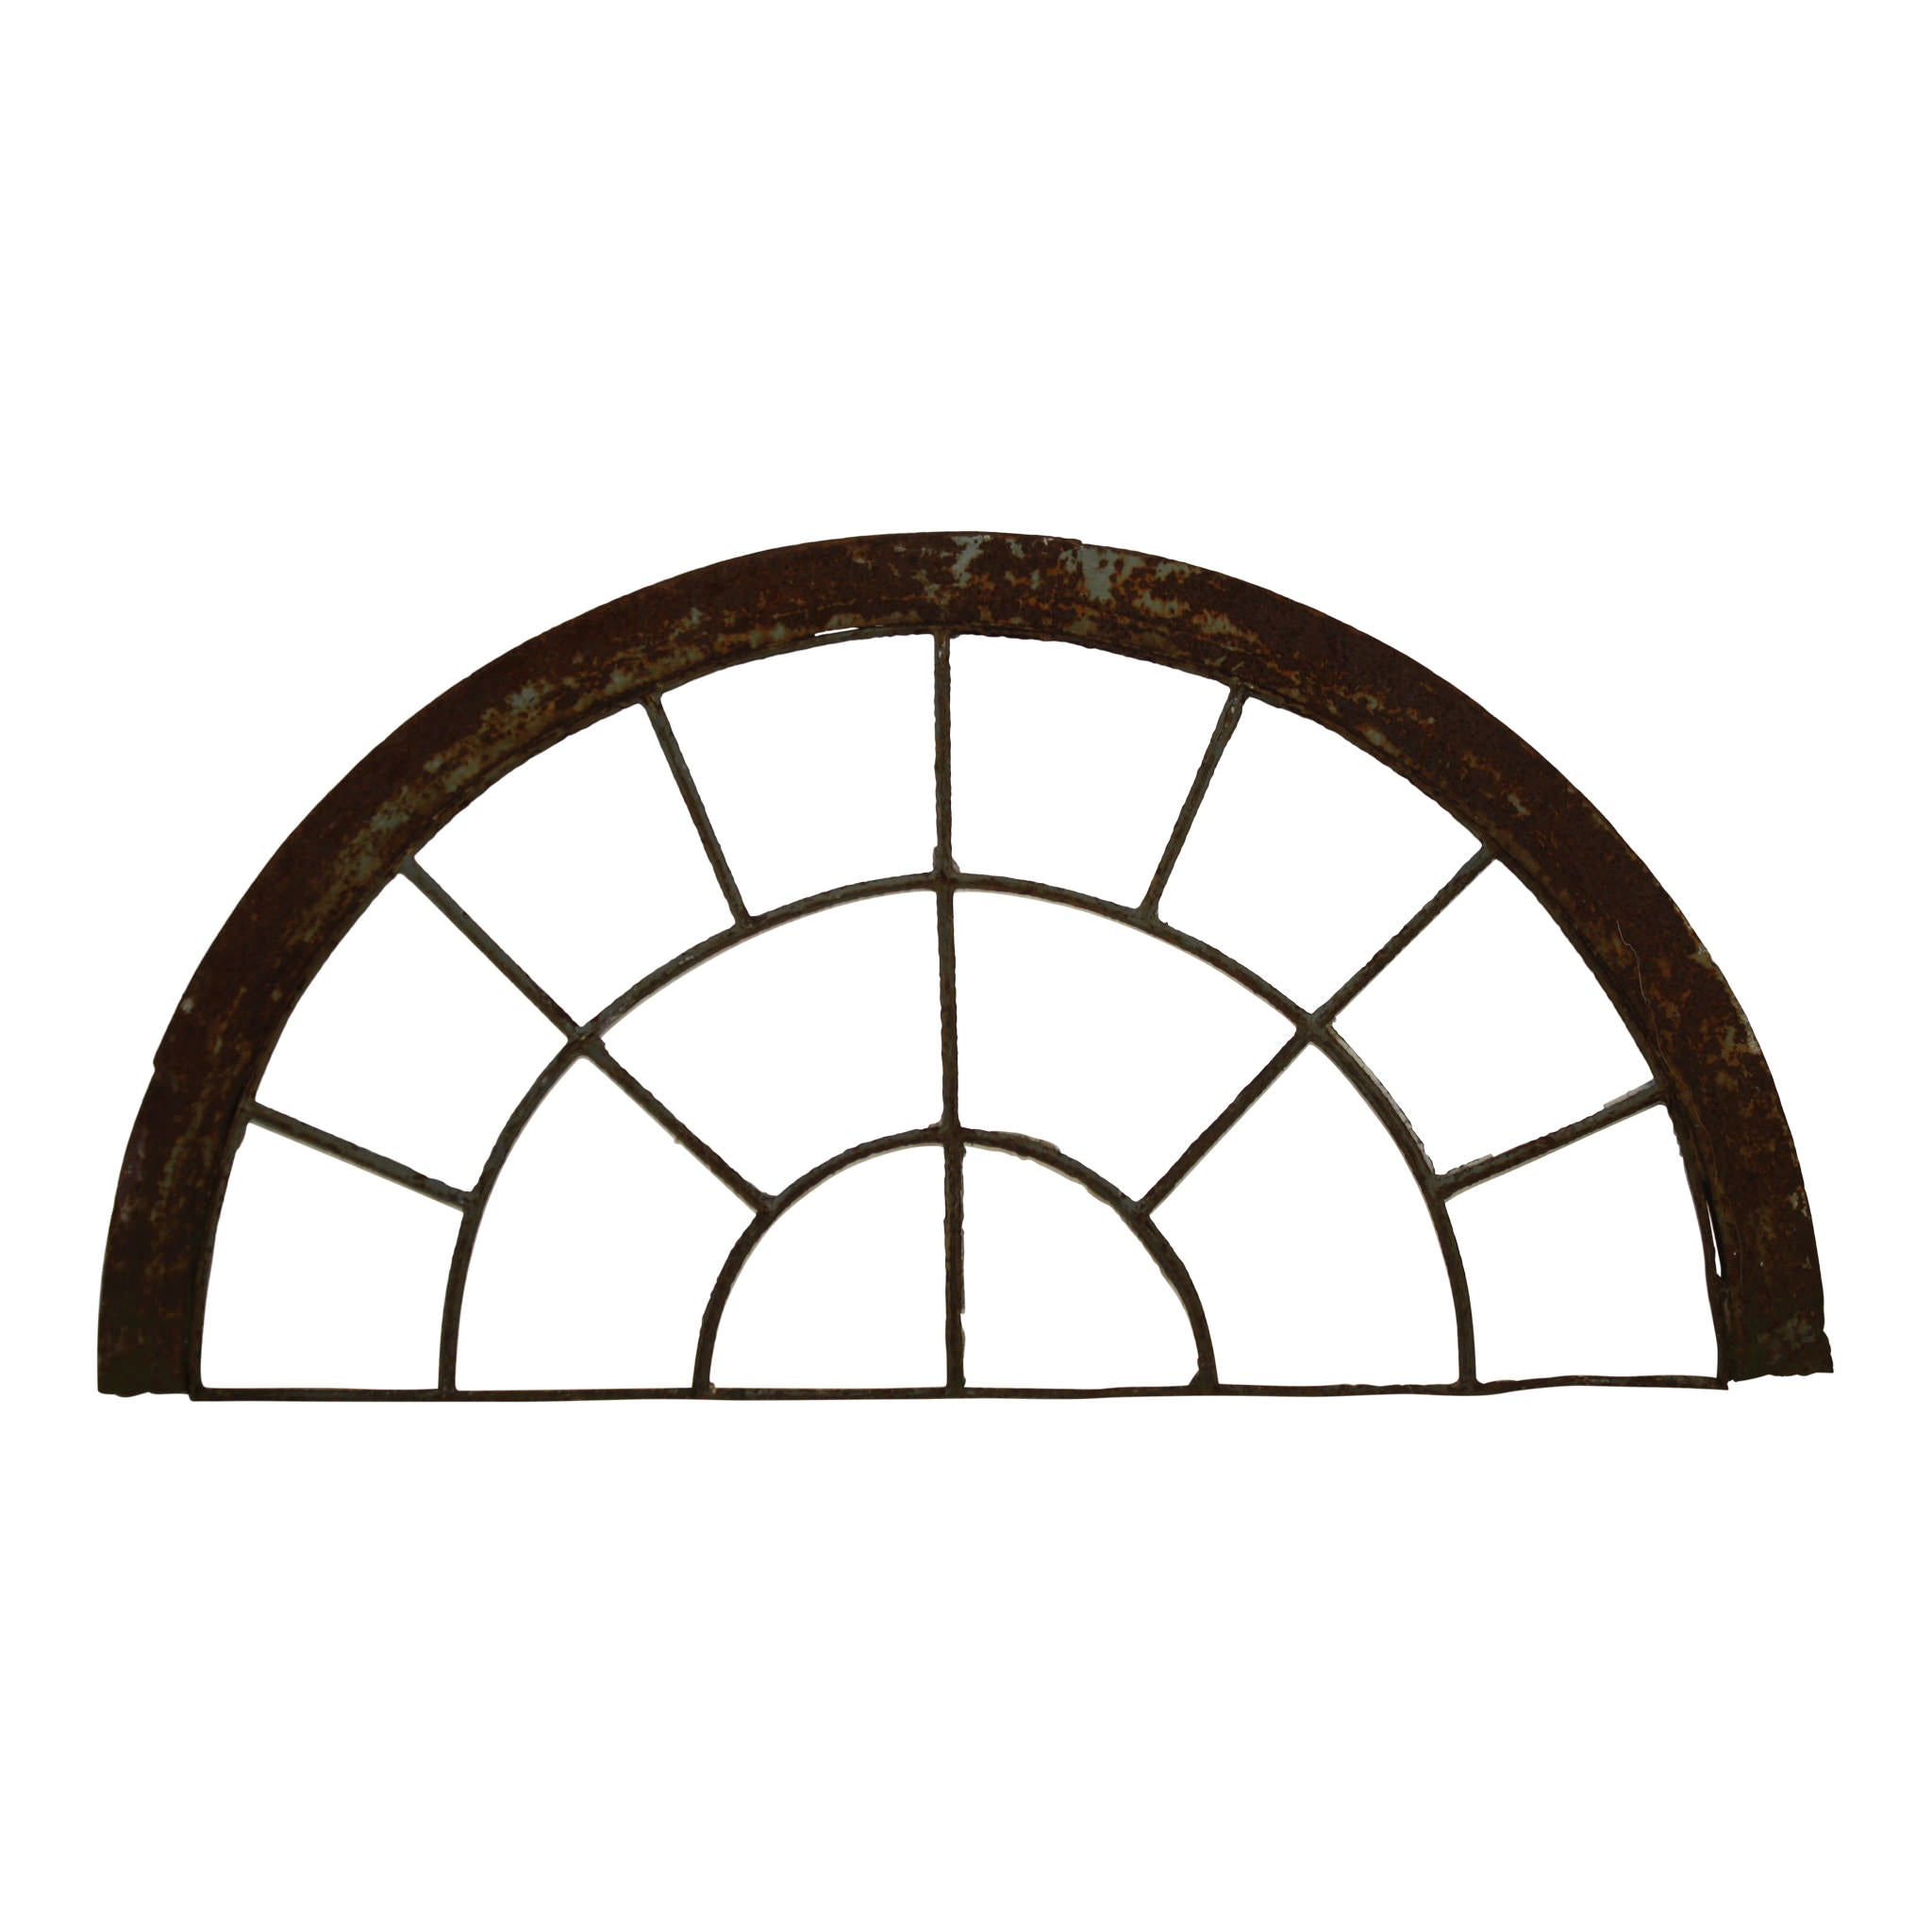 Arched Iron Window Frame